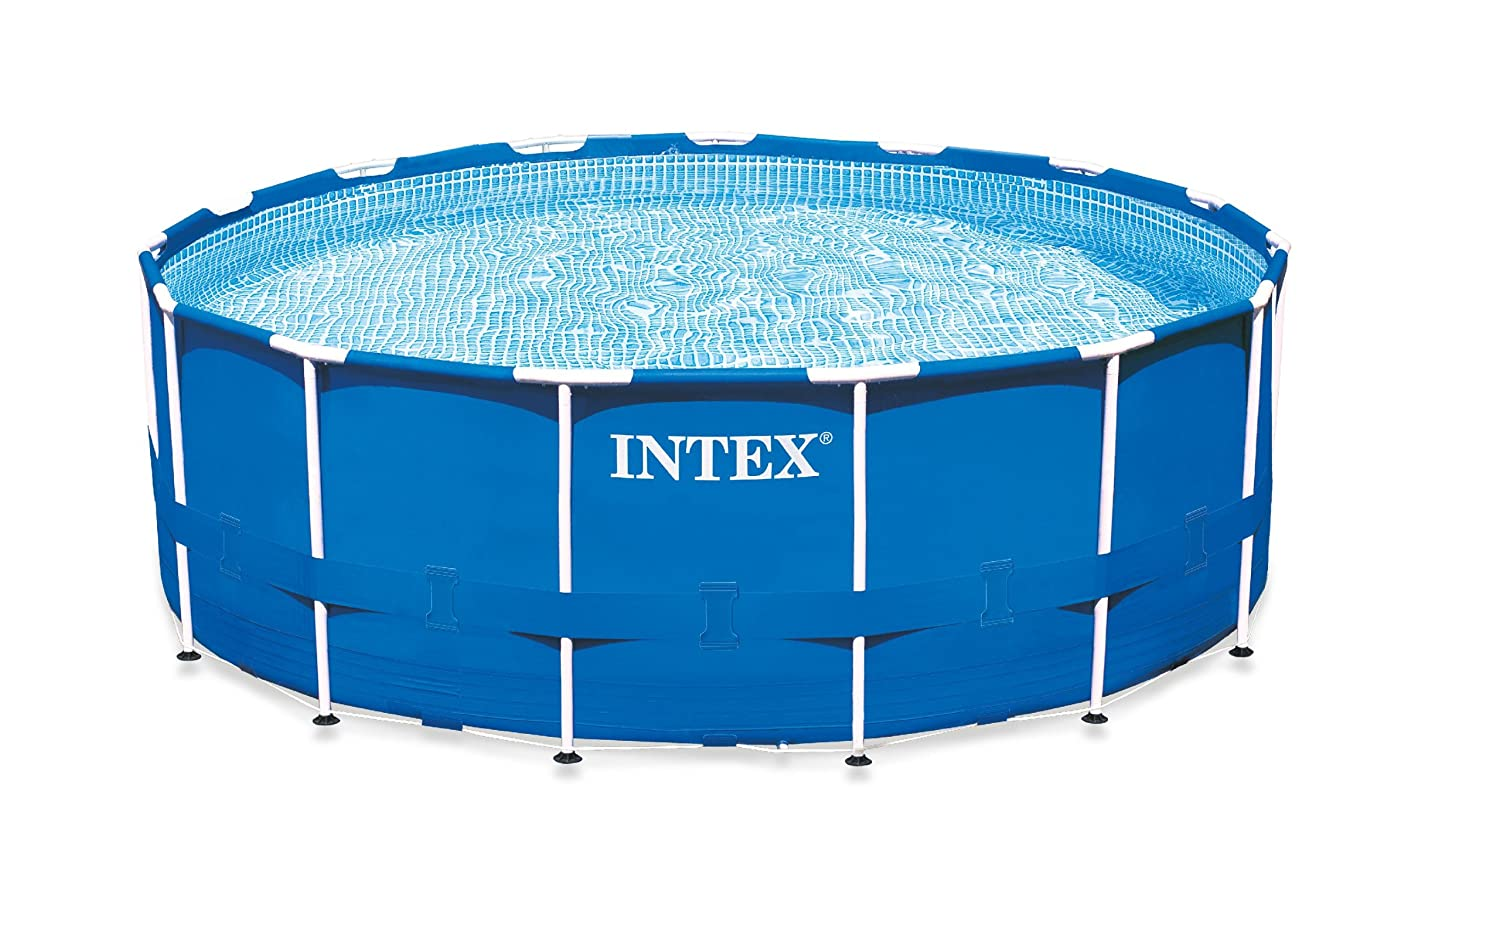 intex 15 foot by 42 inch round metal frame pool set review. Black Bedroom Furniture Sets. Home Design Ideas